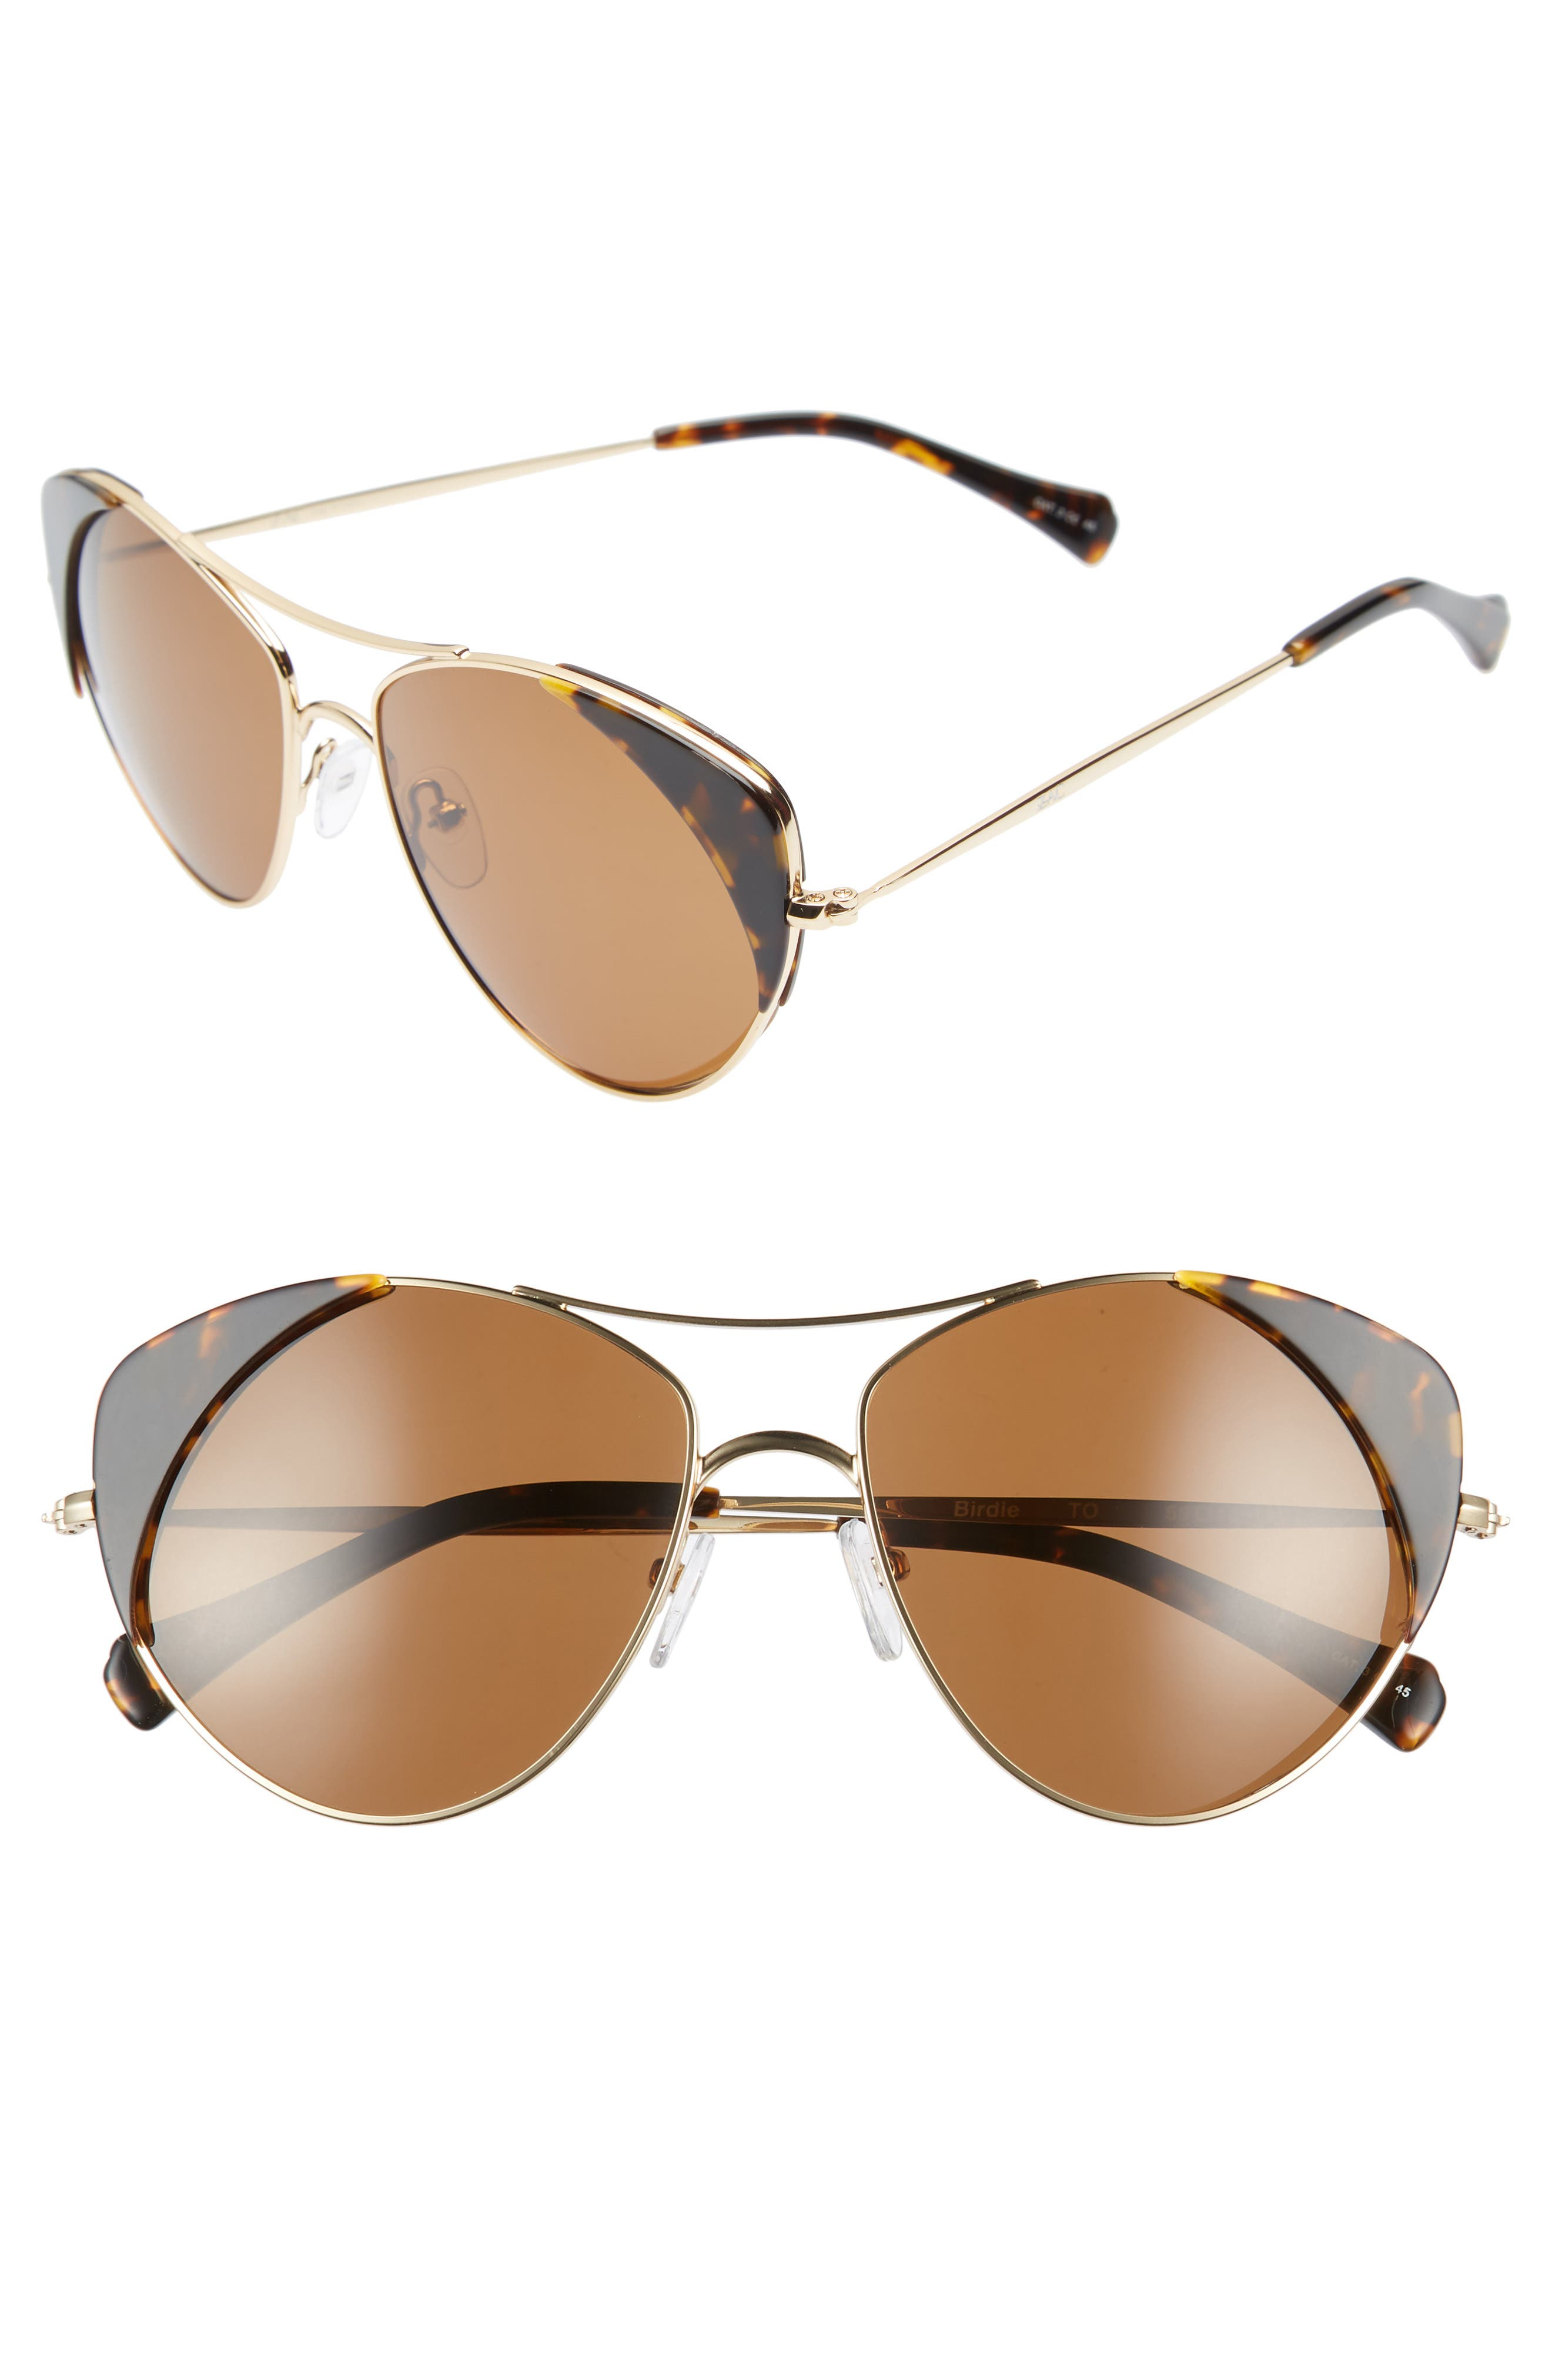 Birdie 59mm Polarized Aviator Sunglasses,                             Main thumbnail 1, color,                             Tortoise Polar/ Brown